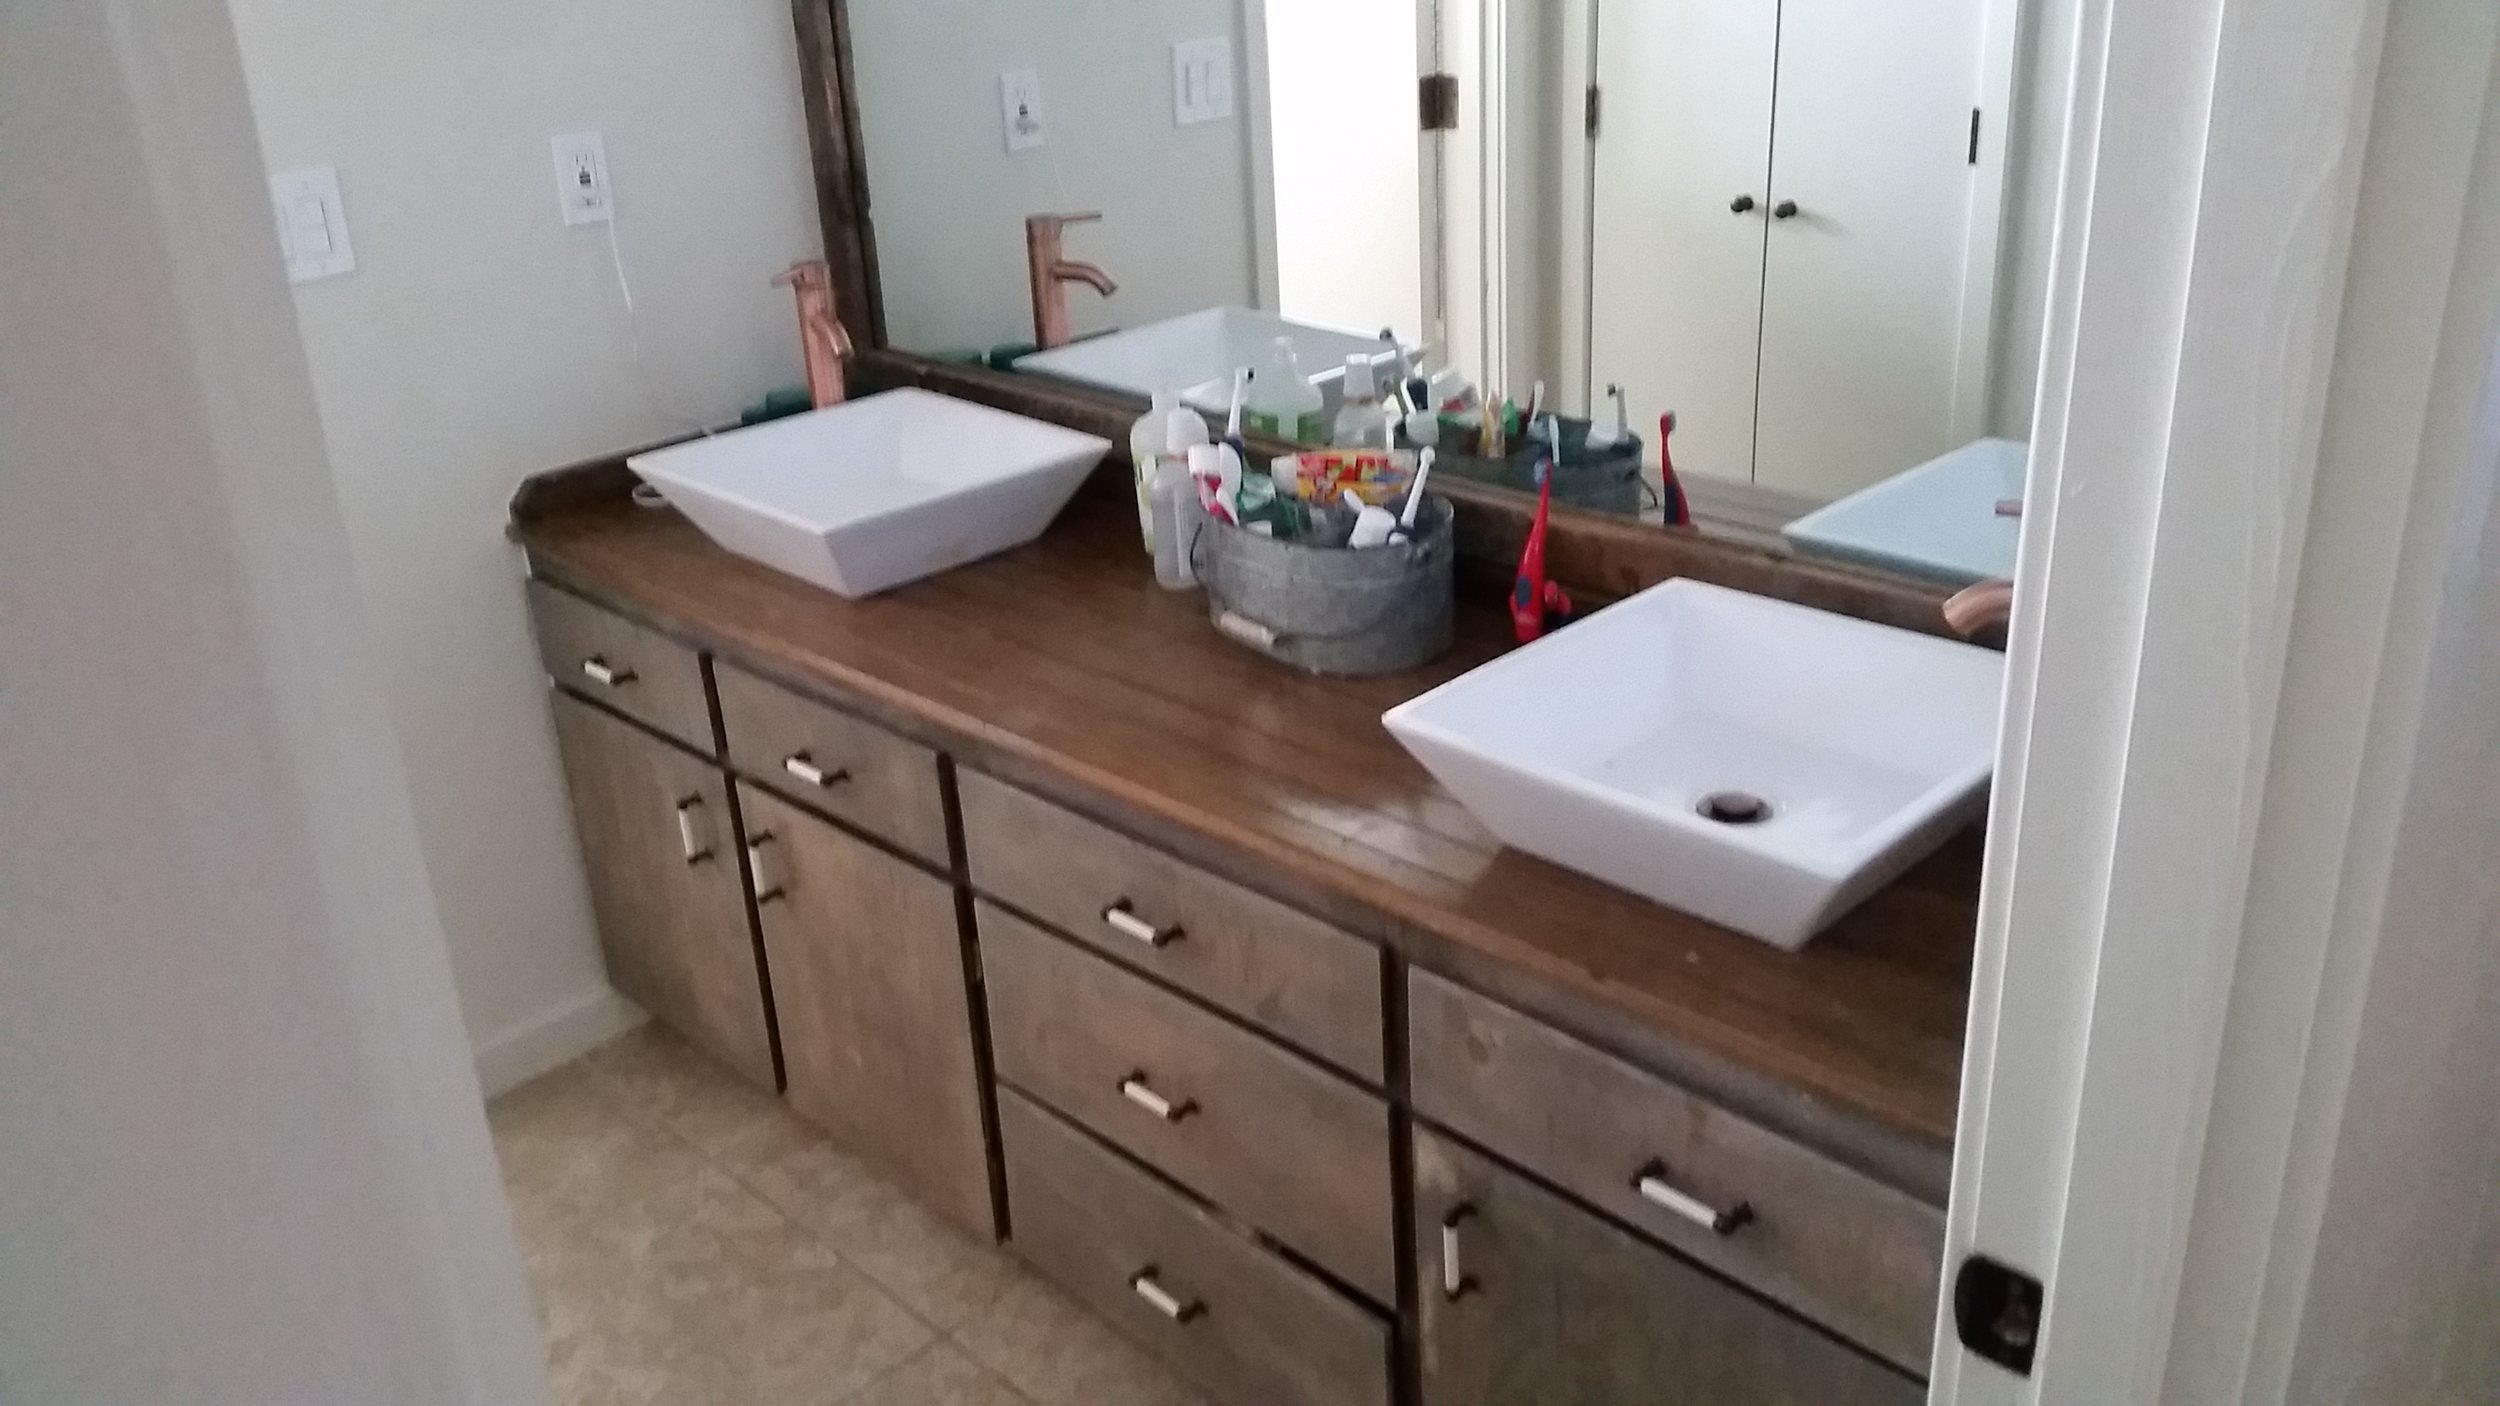 Refinished vanity with new top and basin sinks.